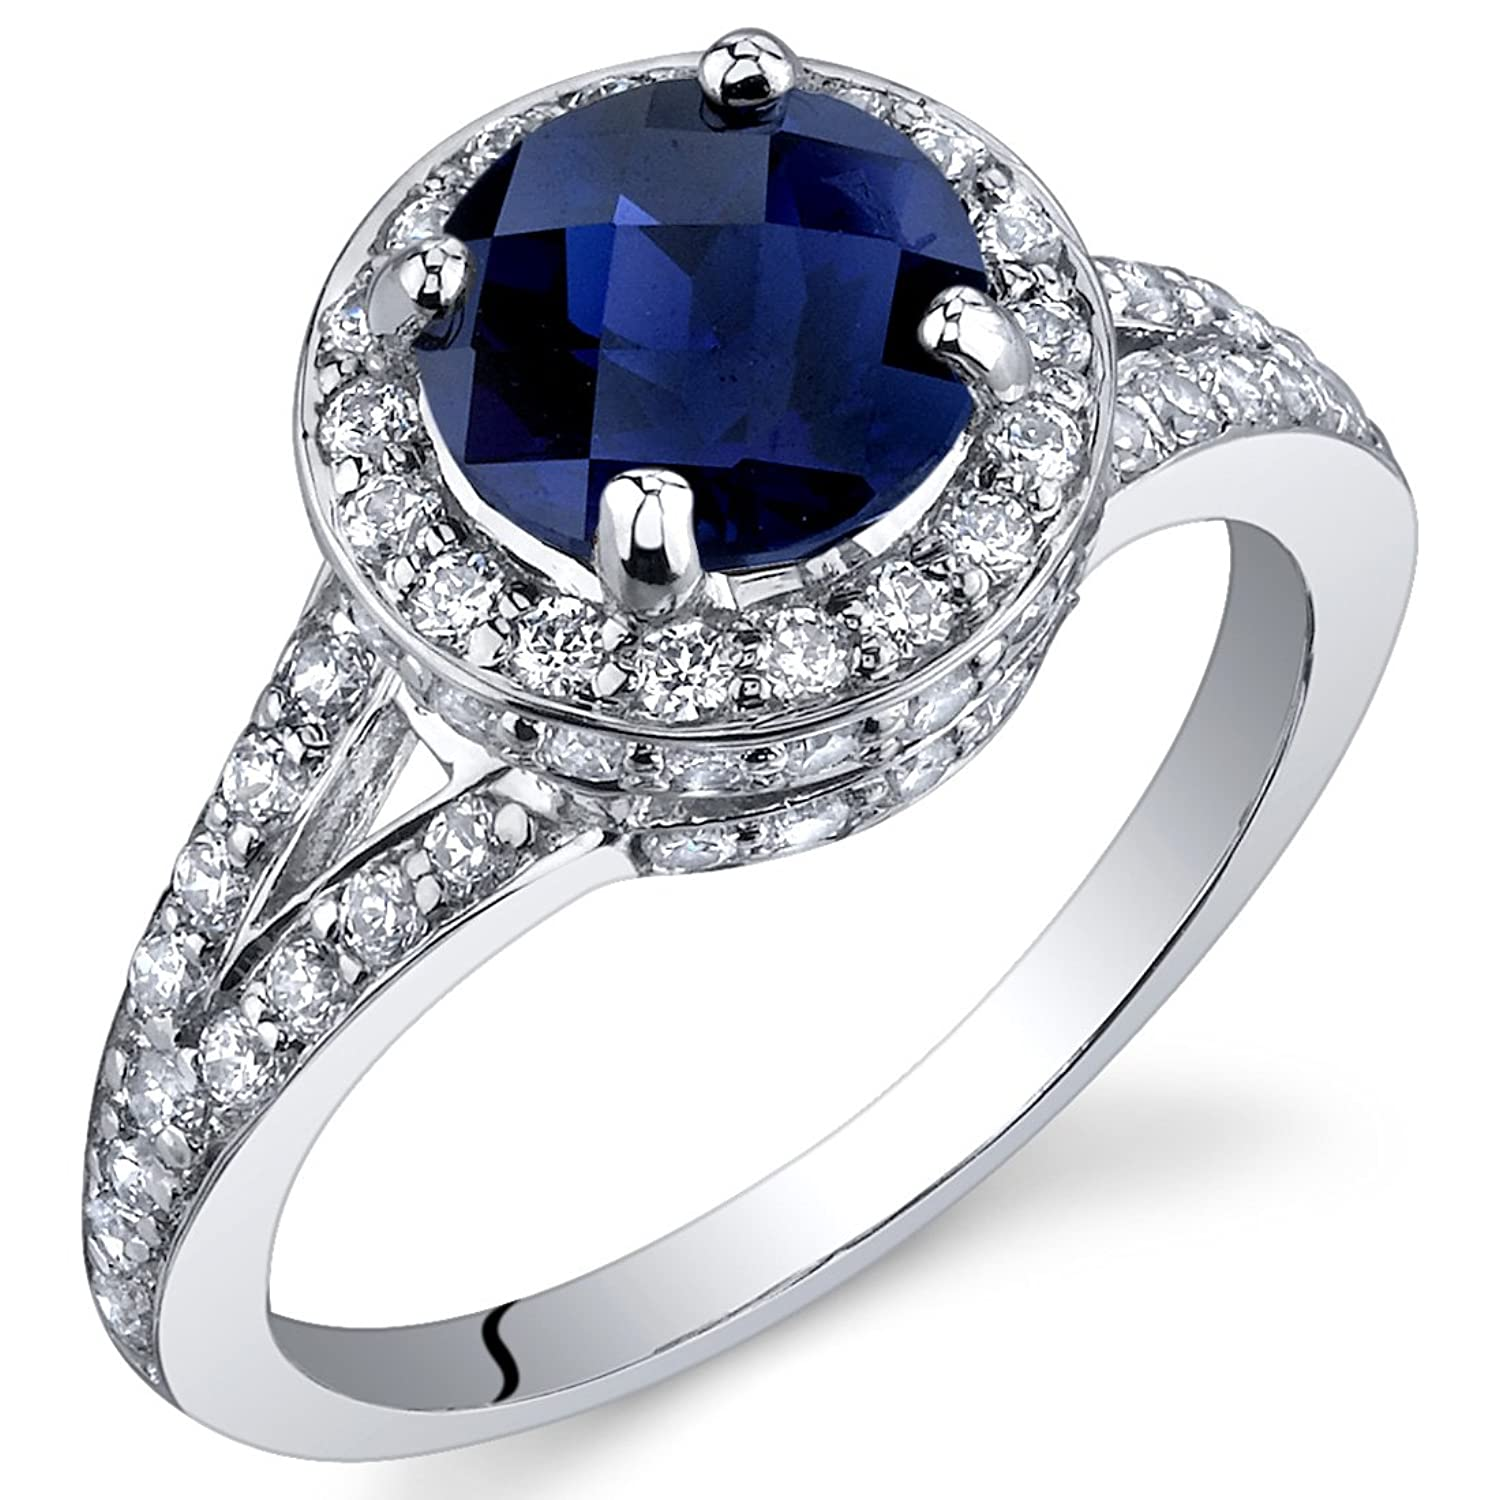 alternative beautiful blue and accessories tips unique fashion diamond engagement unusual madyha non rings royal traditional